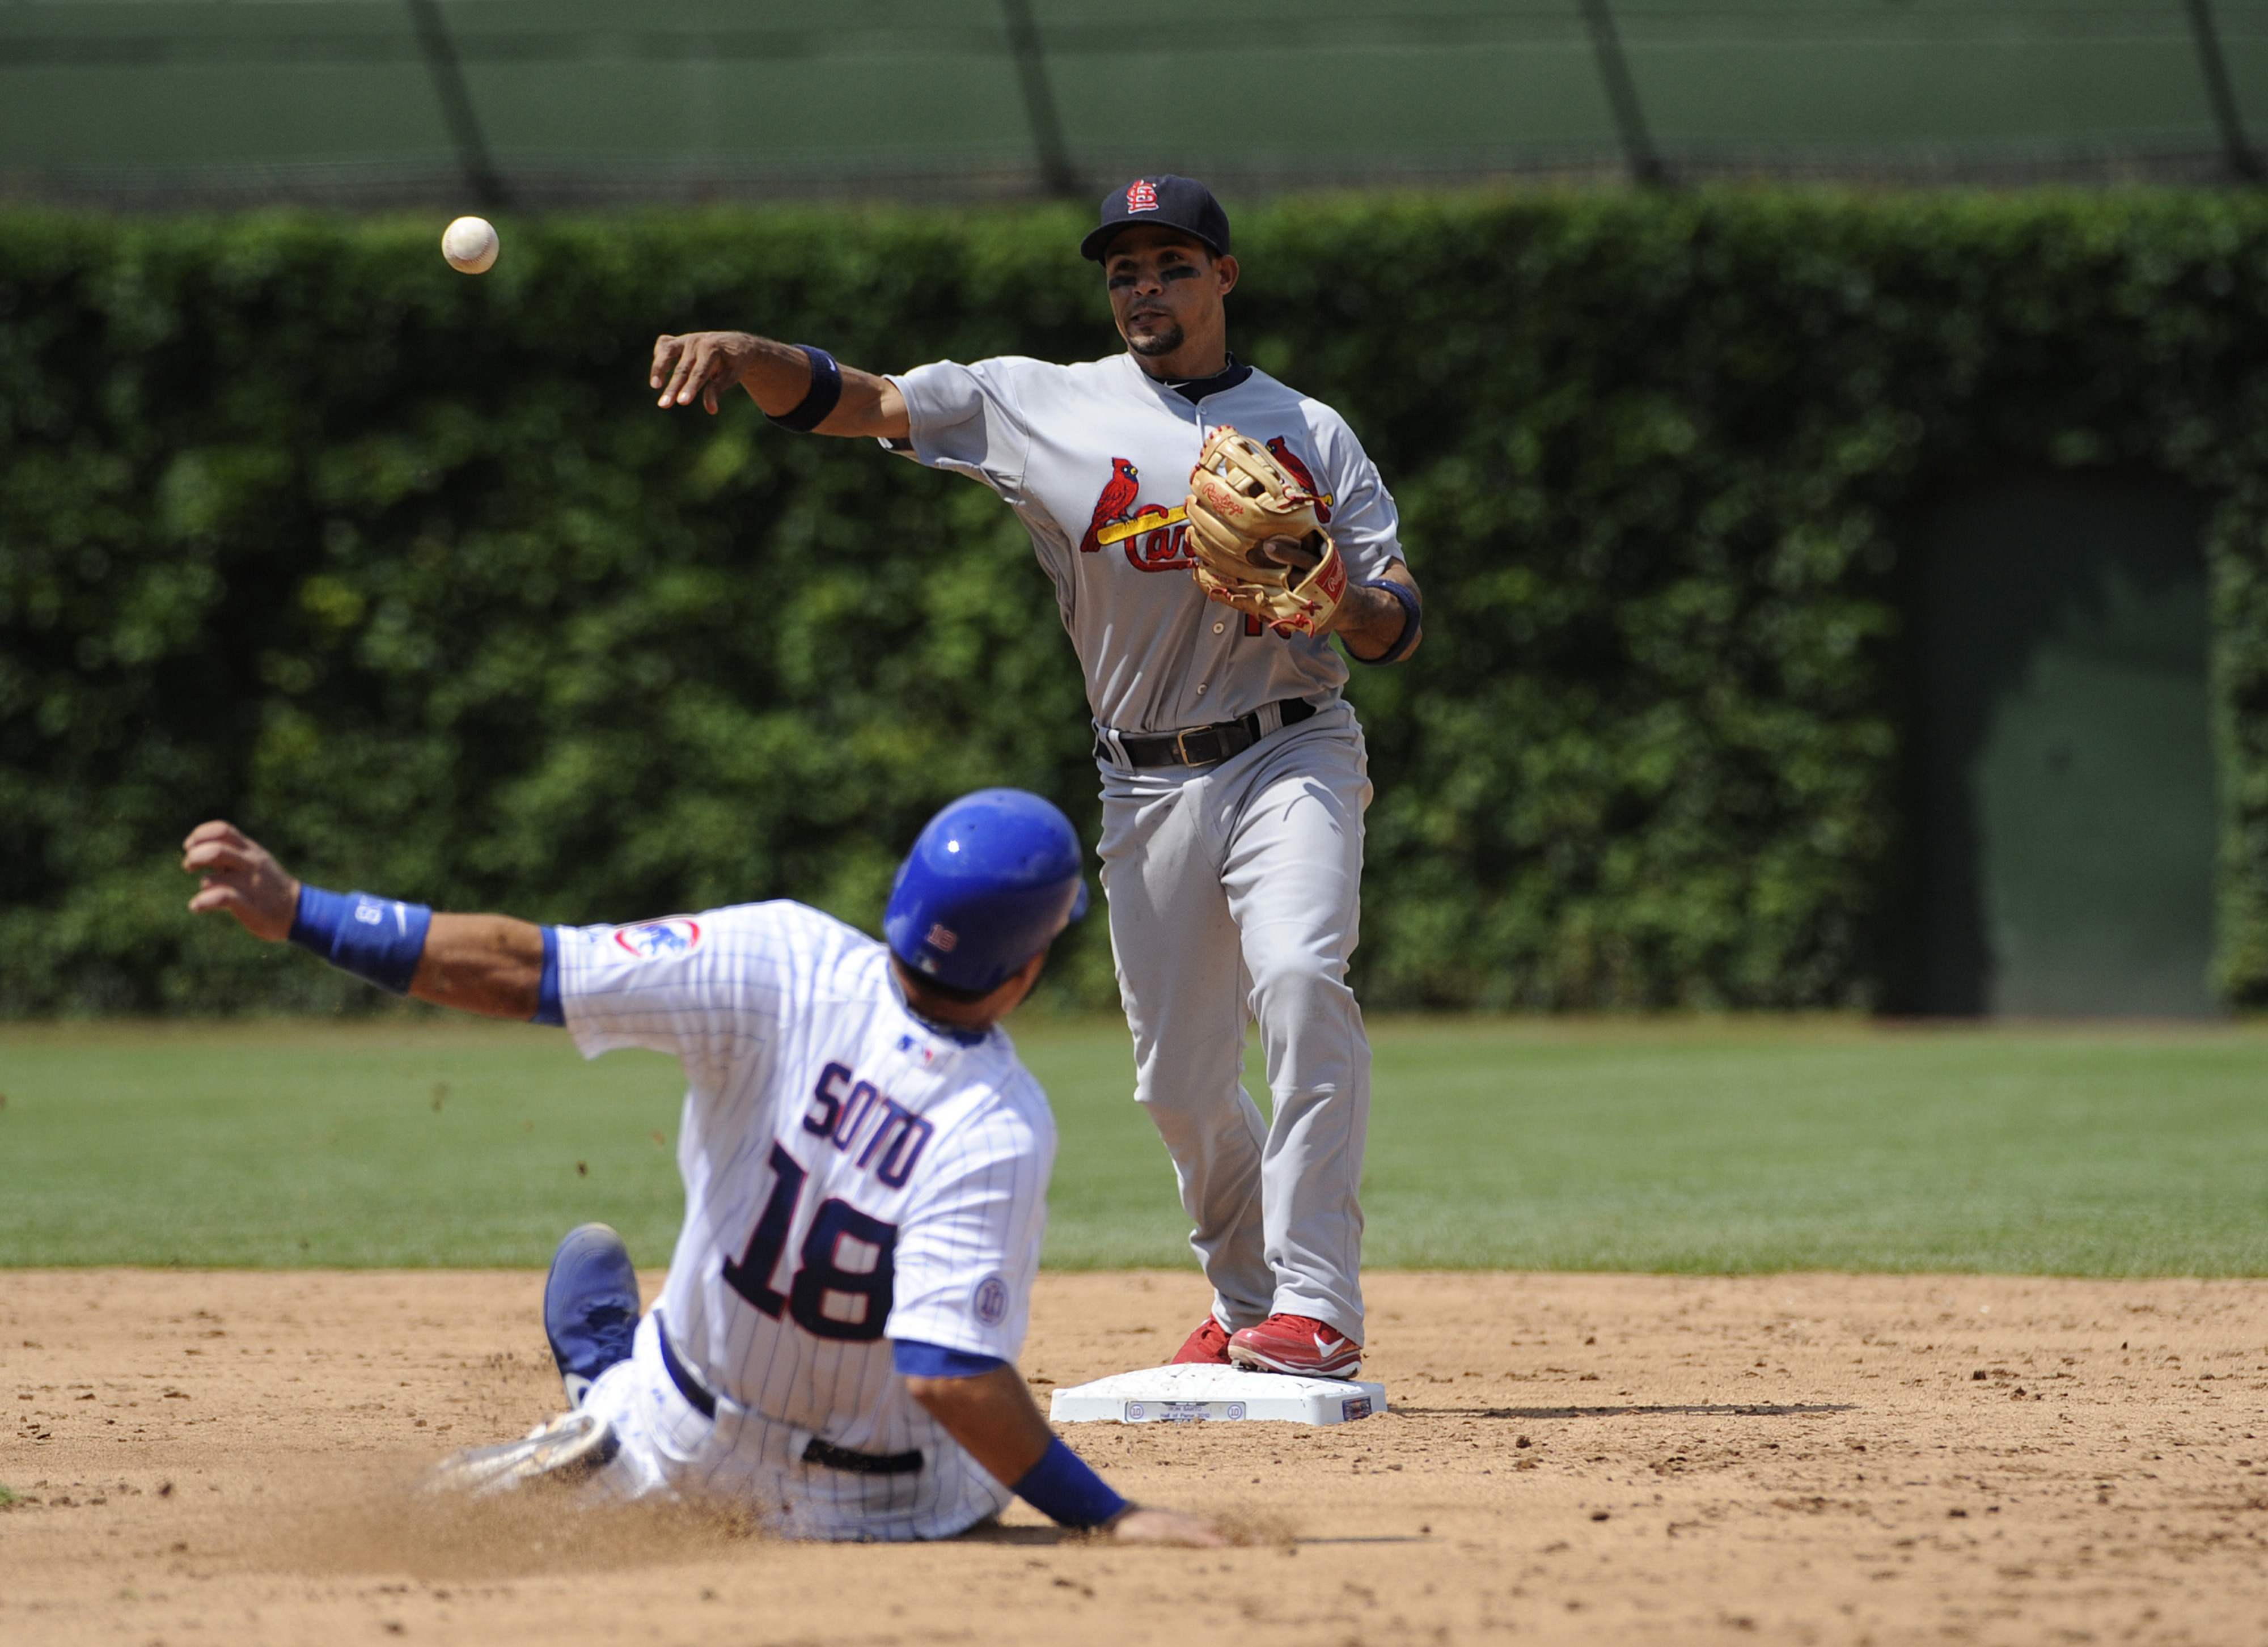 JULY 27, 2012; Chicago, IL, USA;St. Louis Cardinals shortstop Rafael Furcal (15) forces out Chicago Cubs catcher Geovany Soto (18) in the fourth inning at Wrigley Field.  Mandatory Credit: David Banks-US PRESSWIRE